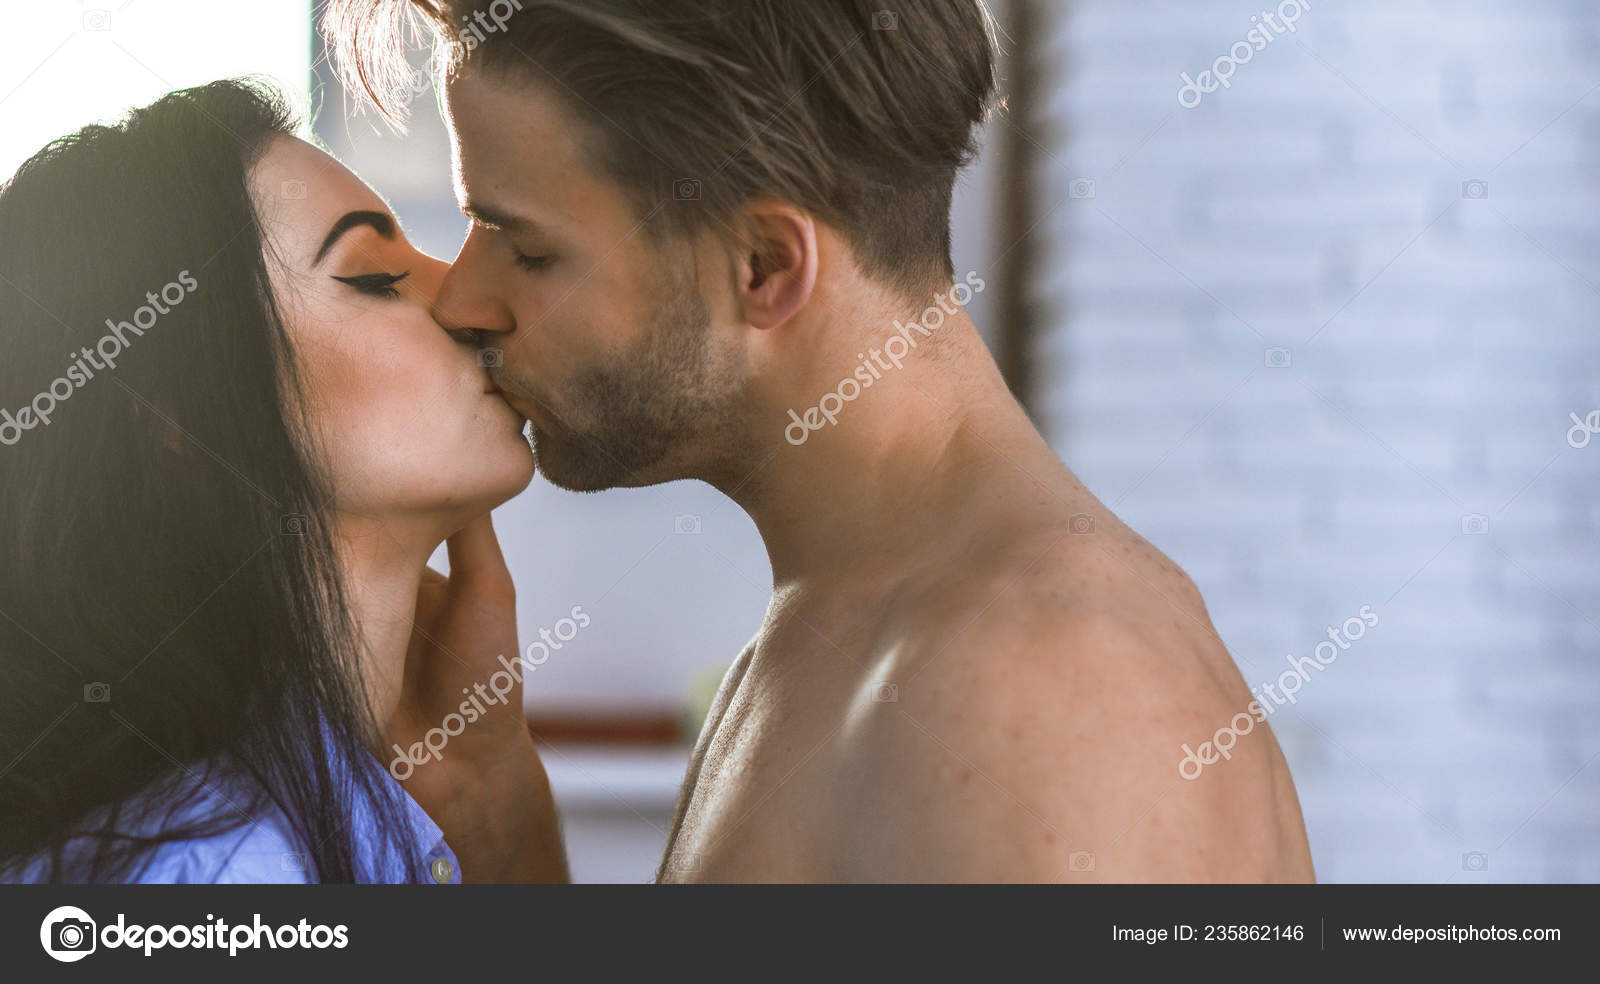 Passionate Kiss Concept Couple In Love Kissing With Passion Man And Woman Attractive Lovers Romantic Kiss Seduction And Foreplay Celebrate Valentines Day Sensual Kiss Of Lovely Couple Close Up Stock Photo